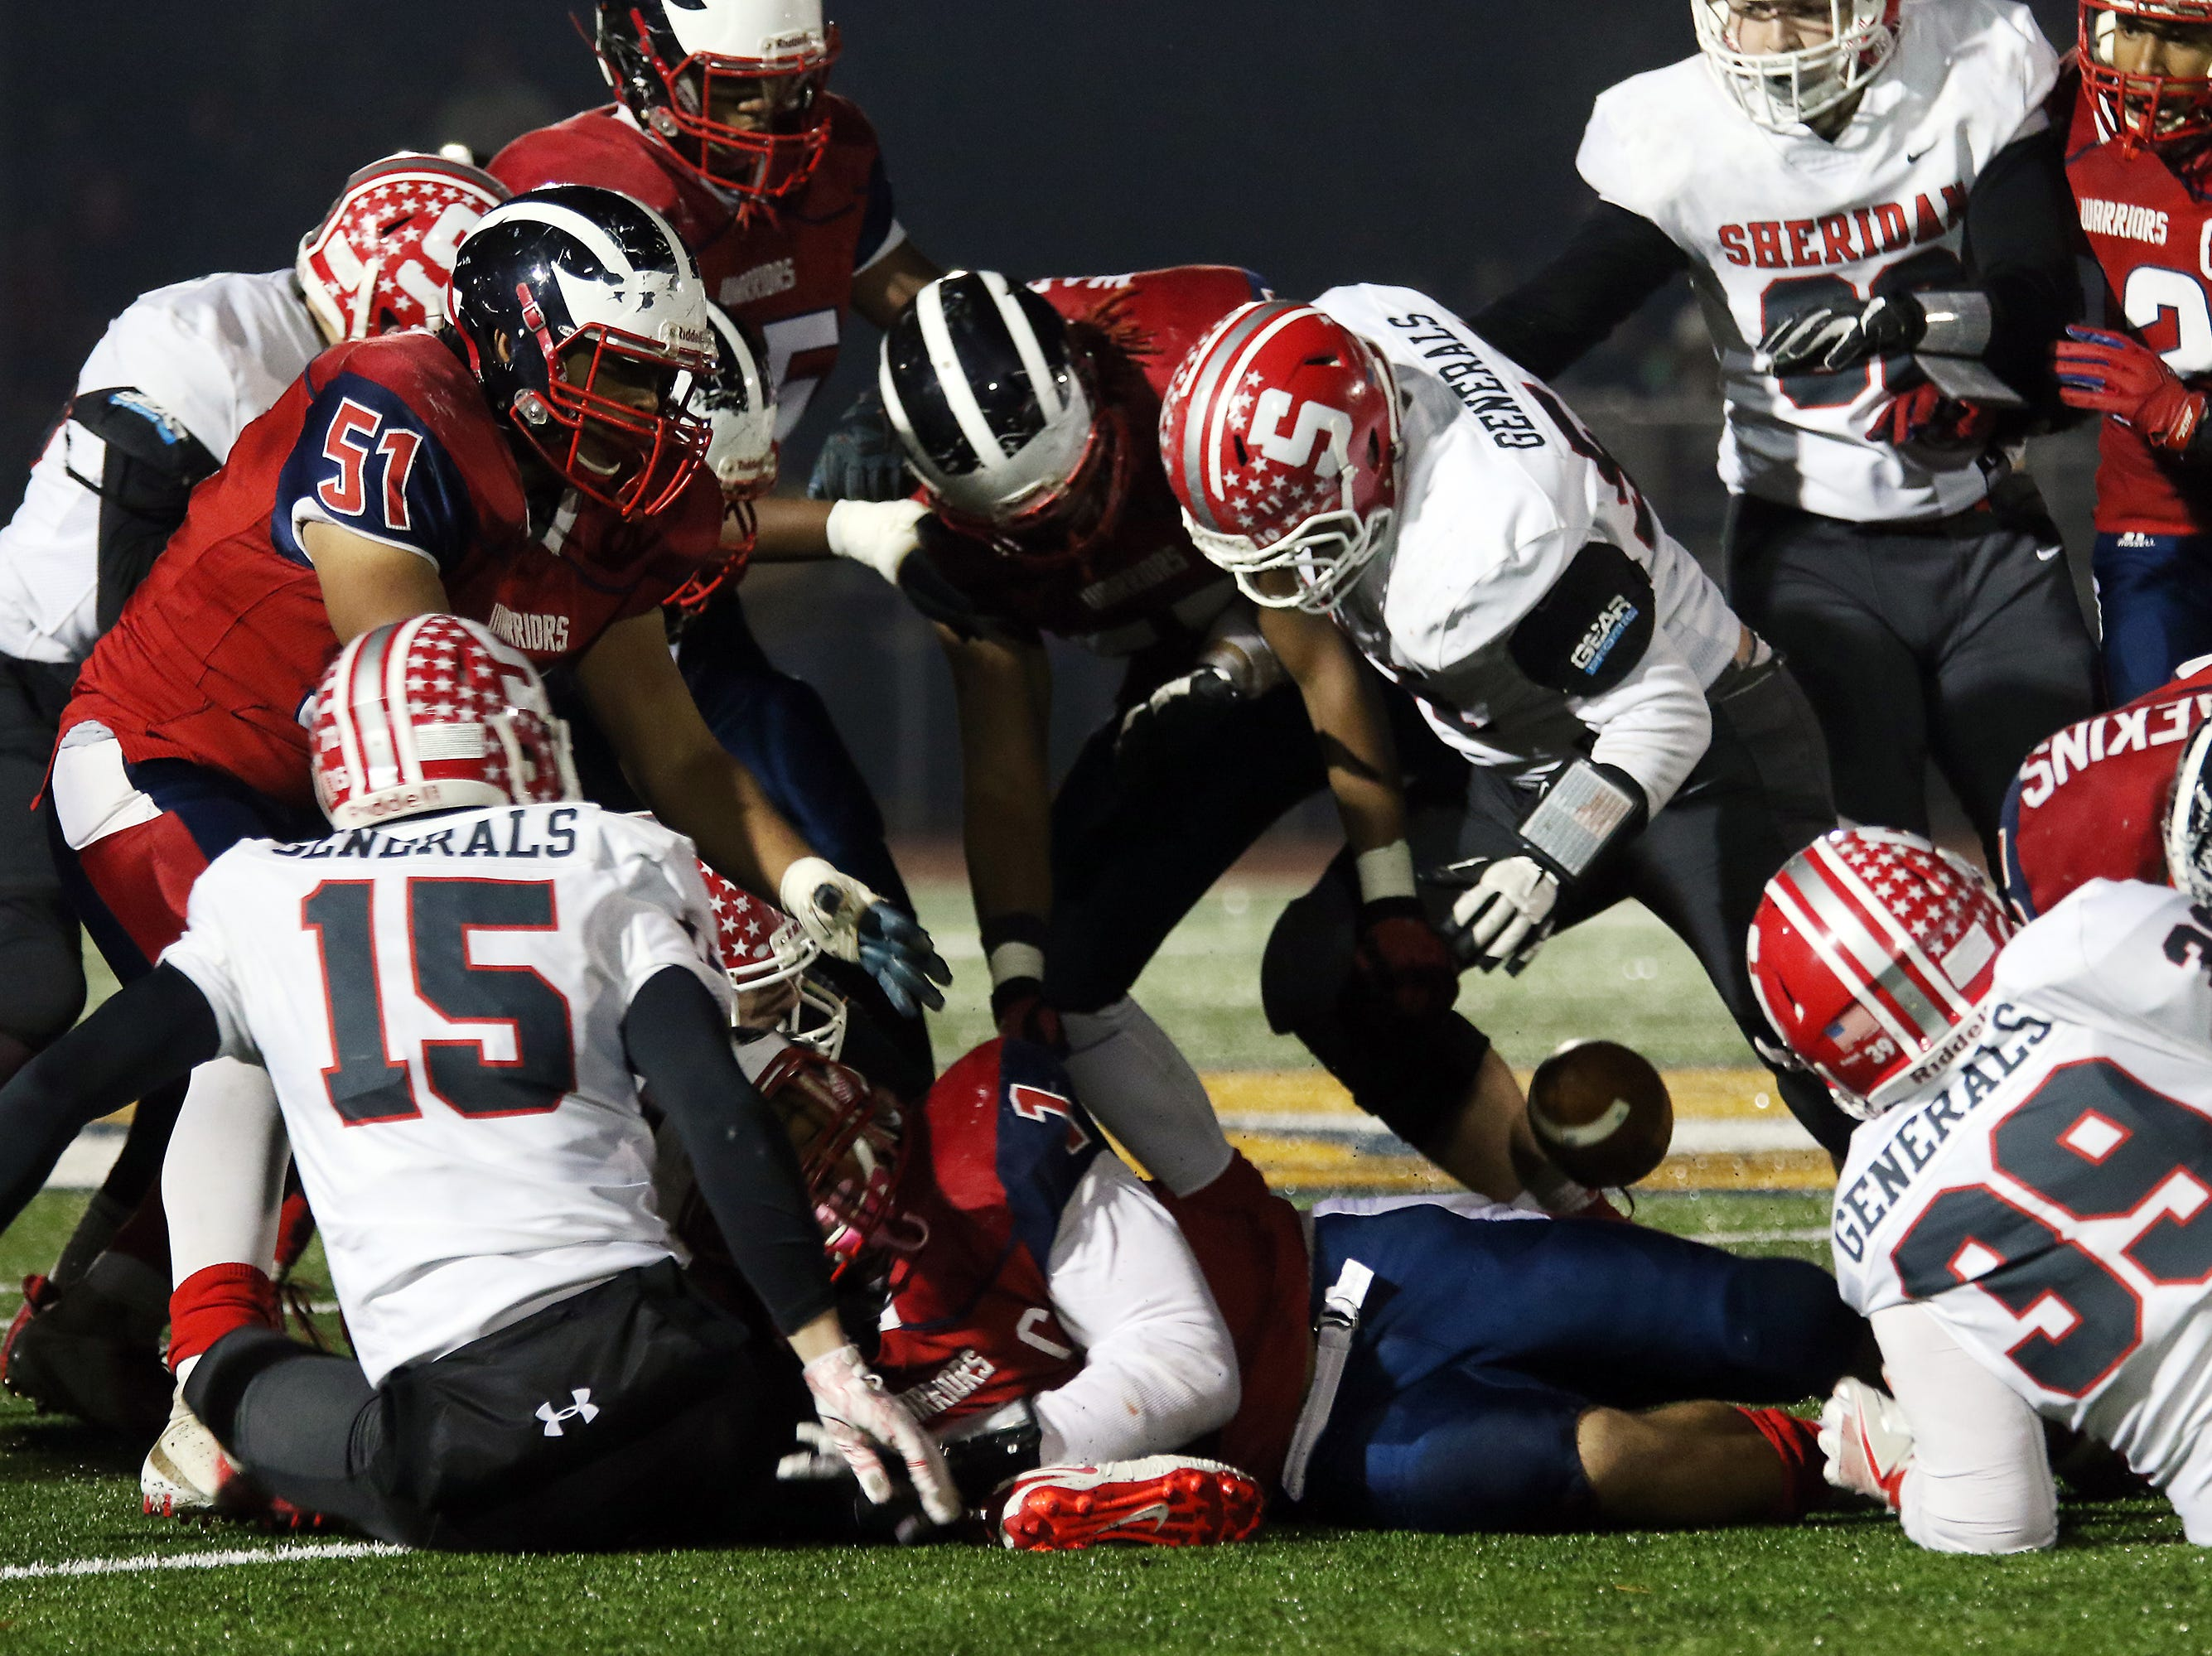 Sheridan forces a fumble against Eastmoor.